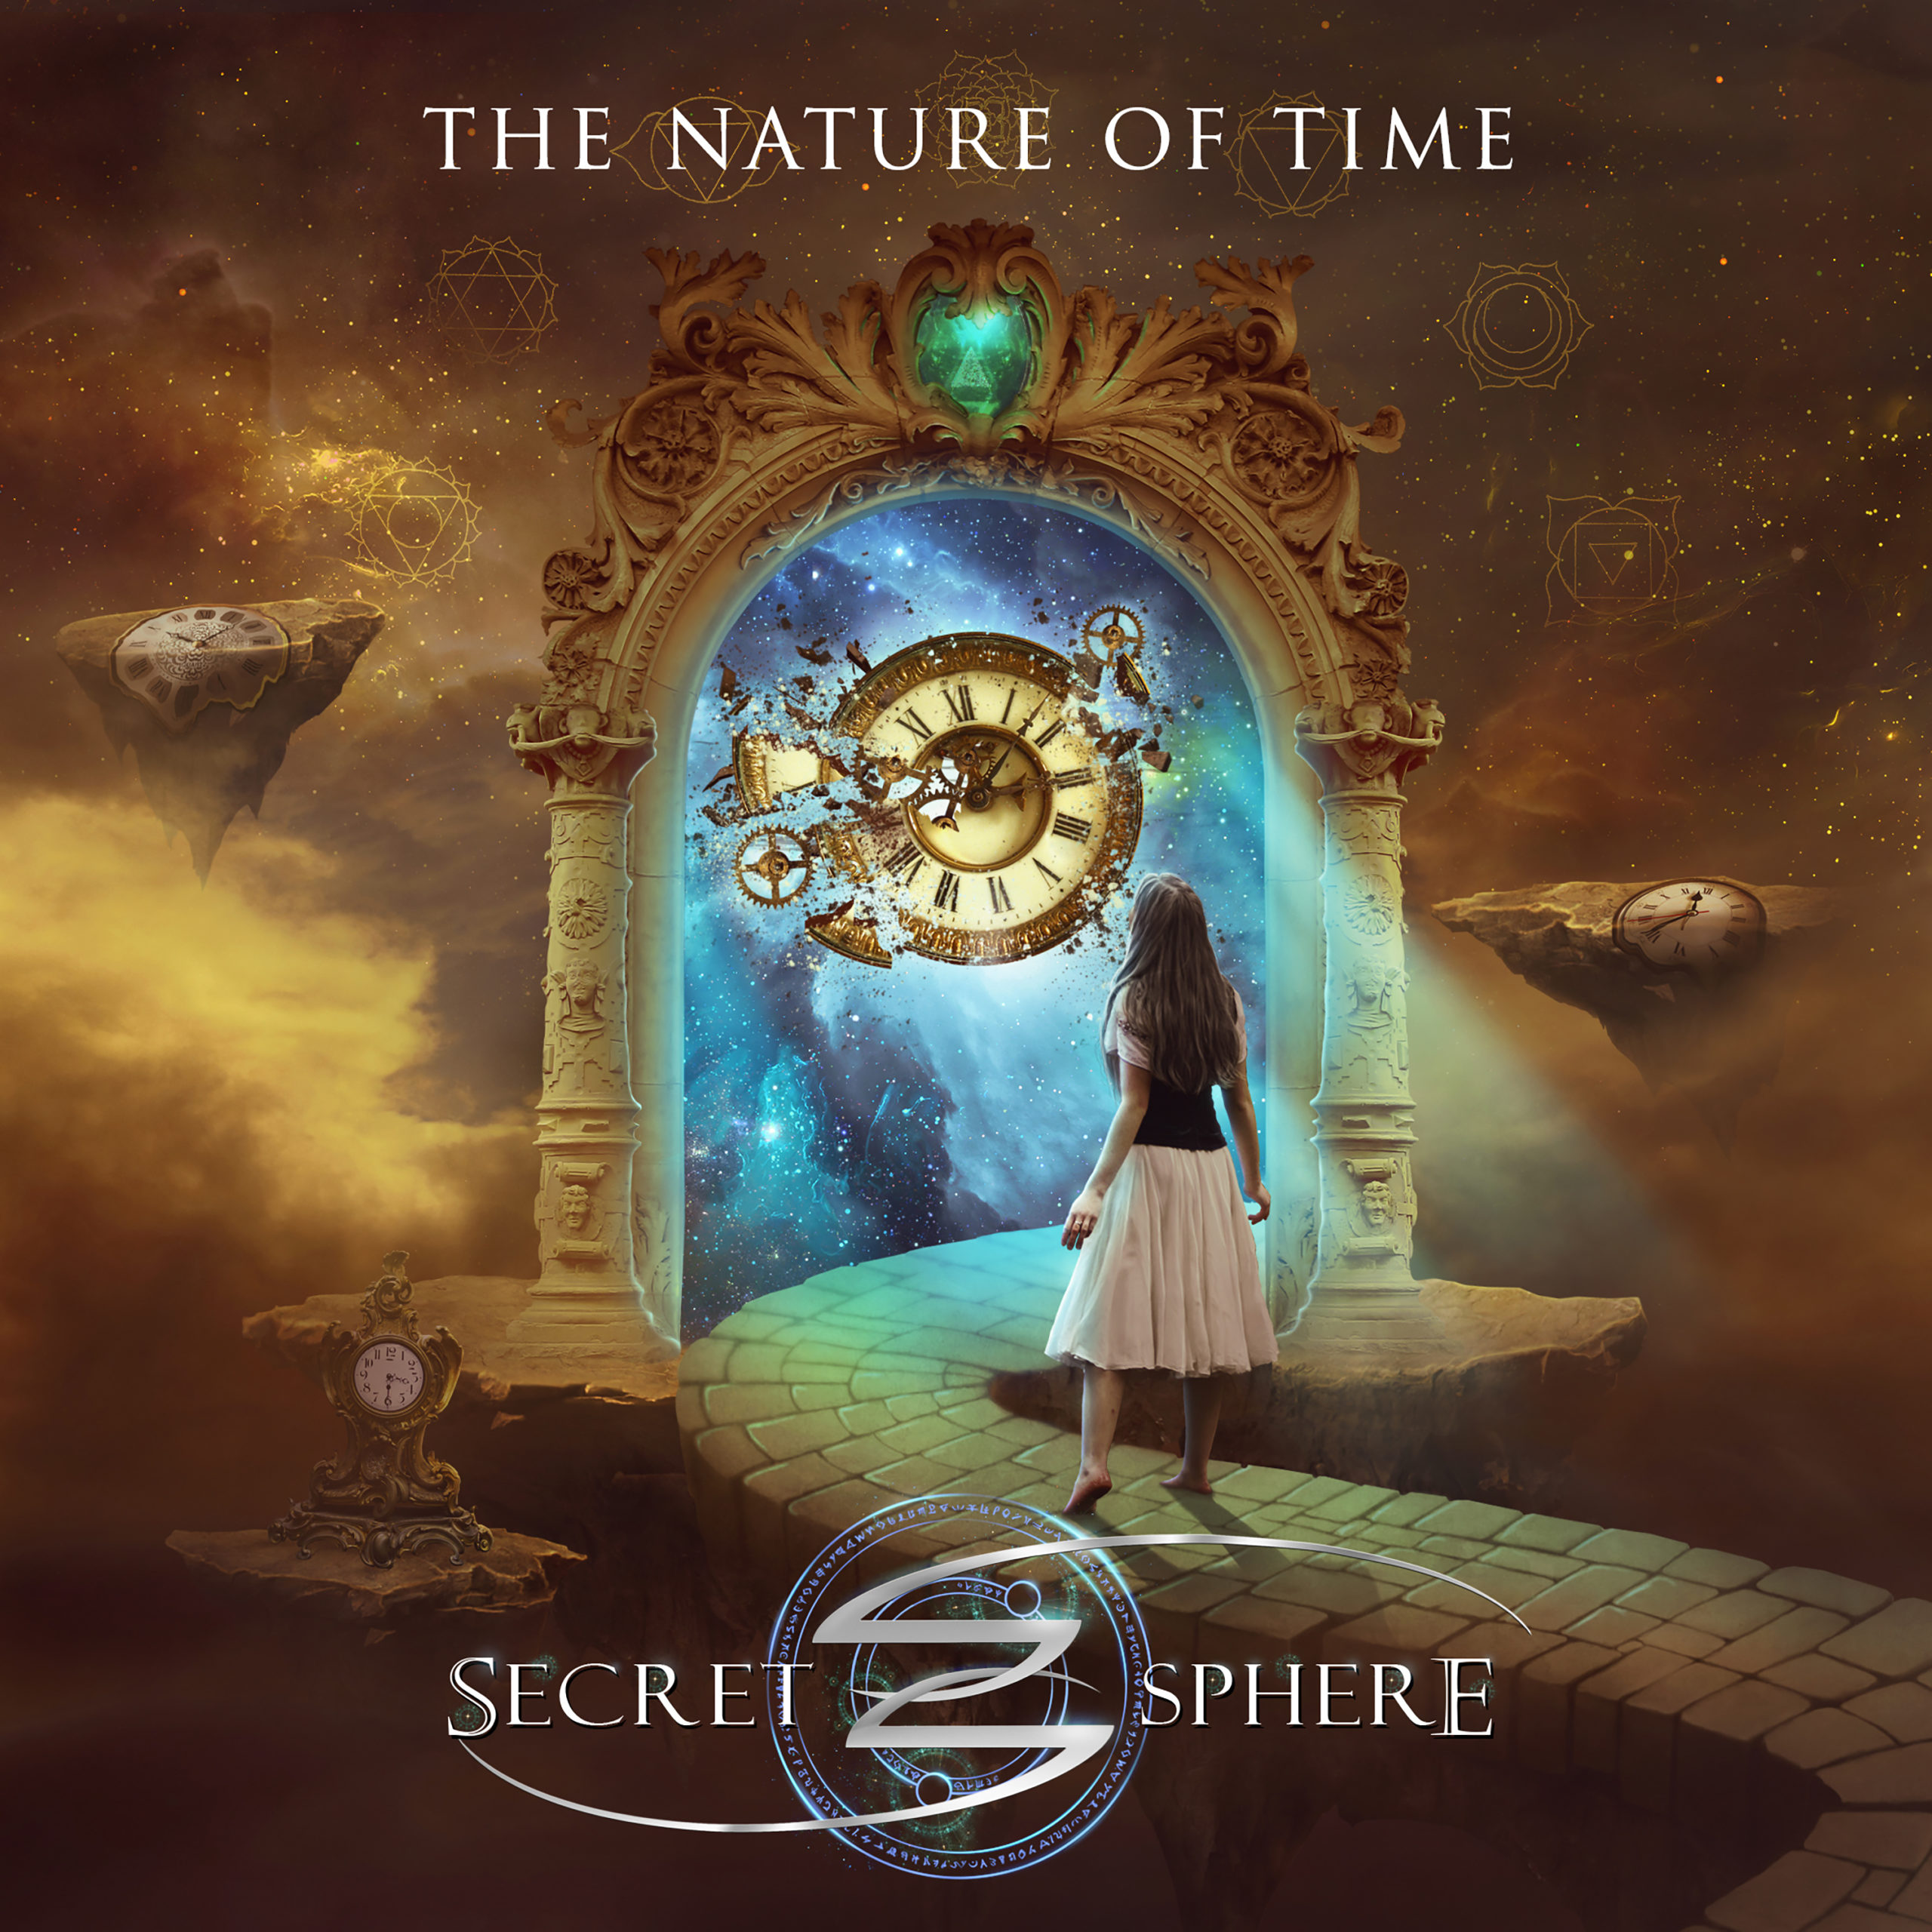 Secret Sphere: The Nature of Time